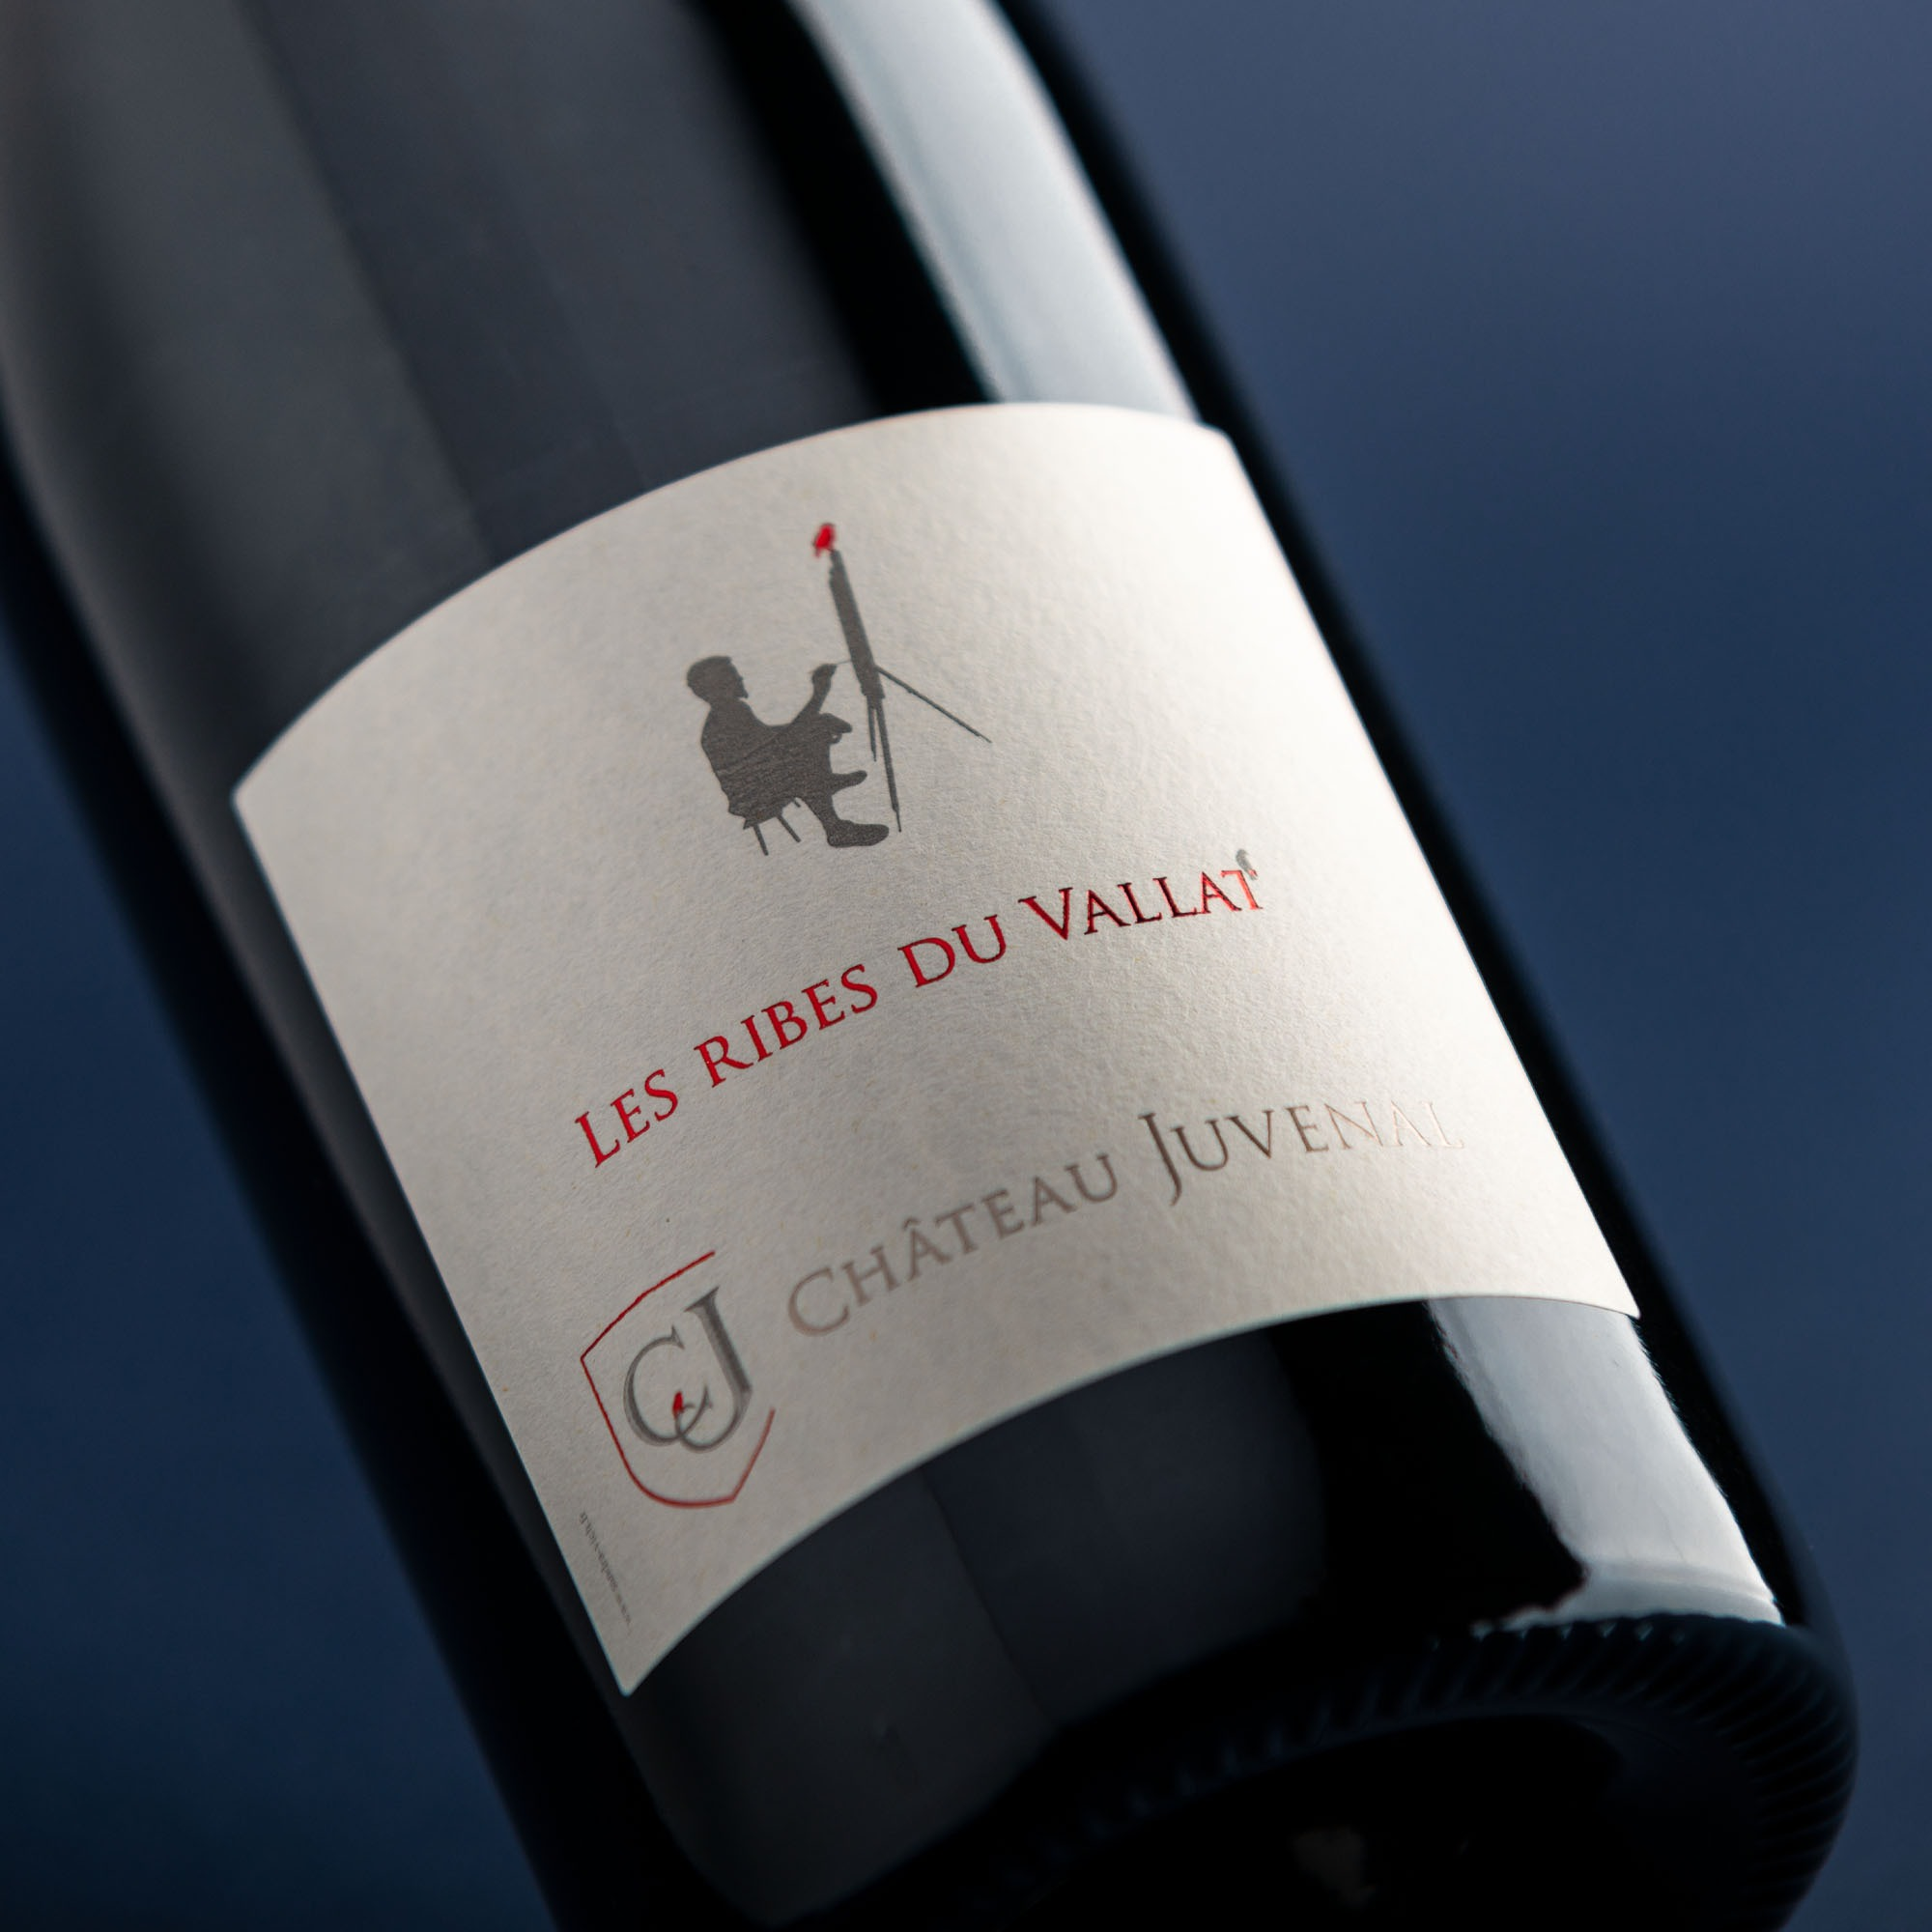 Chateau Juvenal Rouge